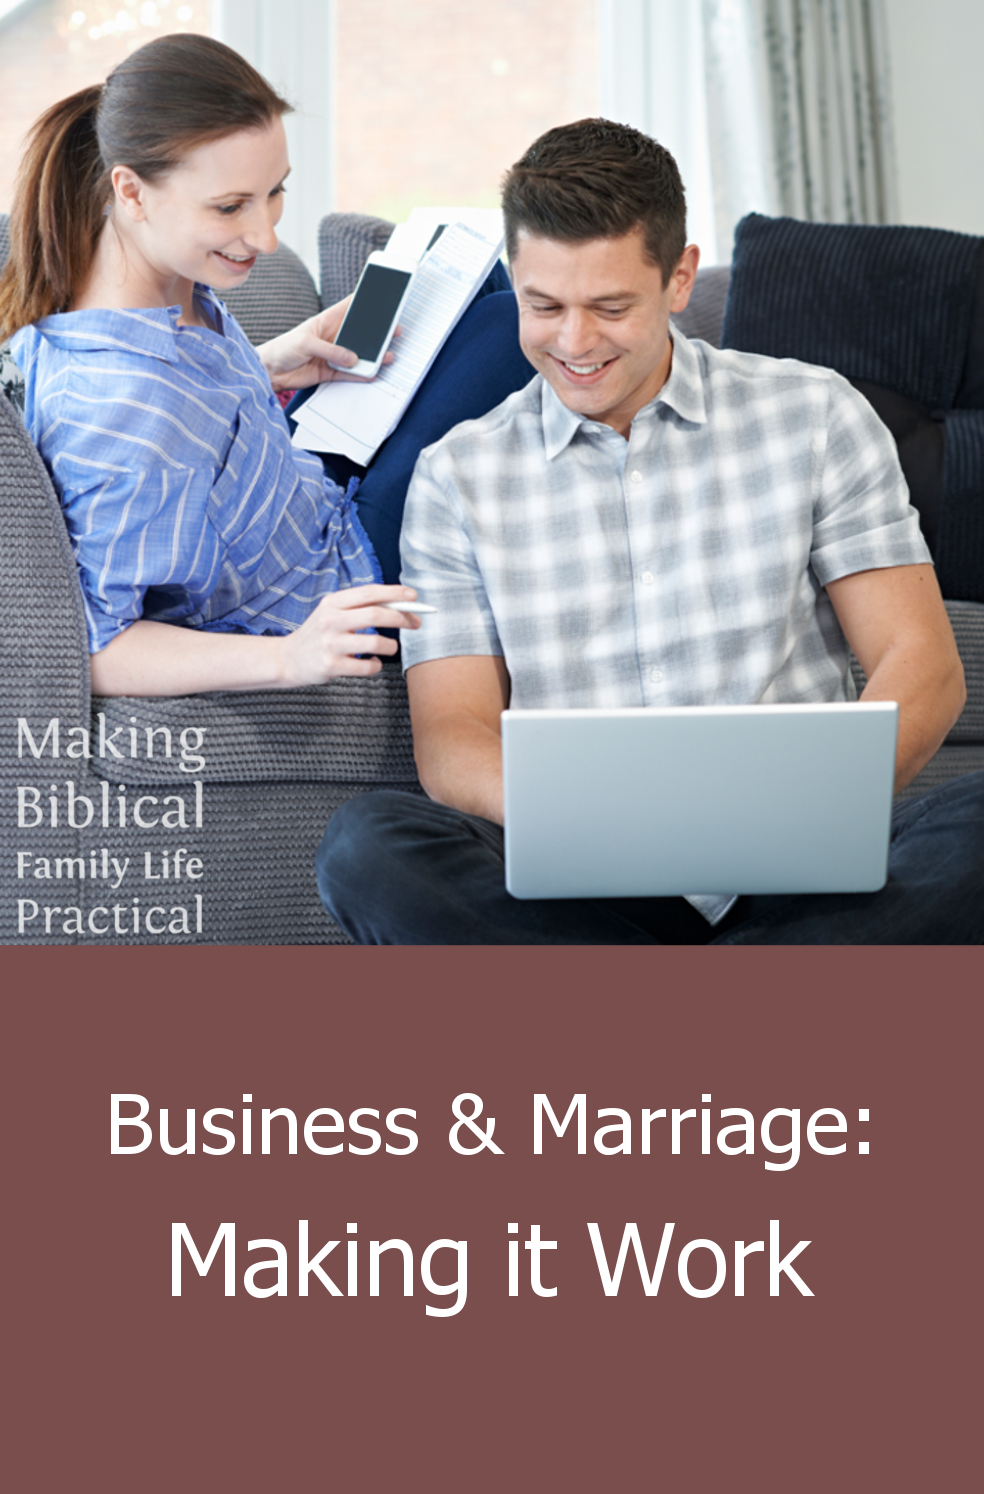 Making a Marriage Work